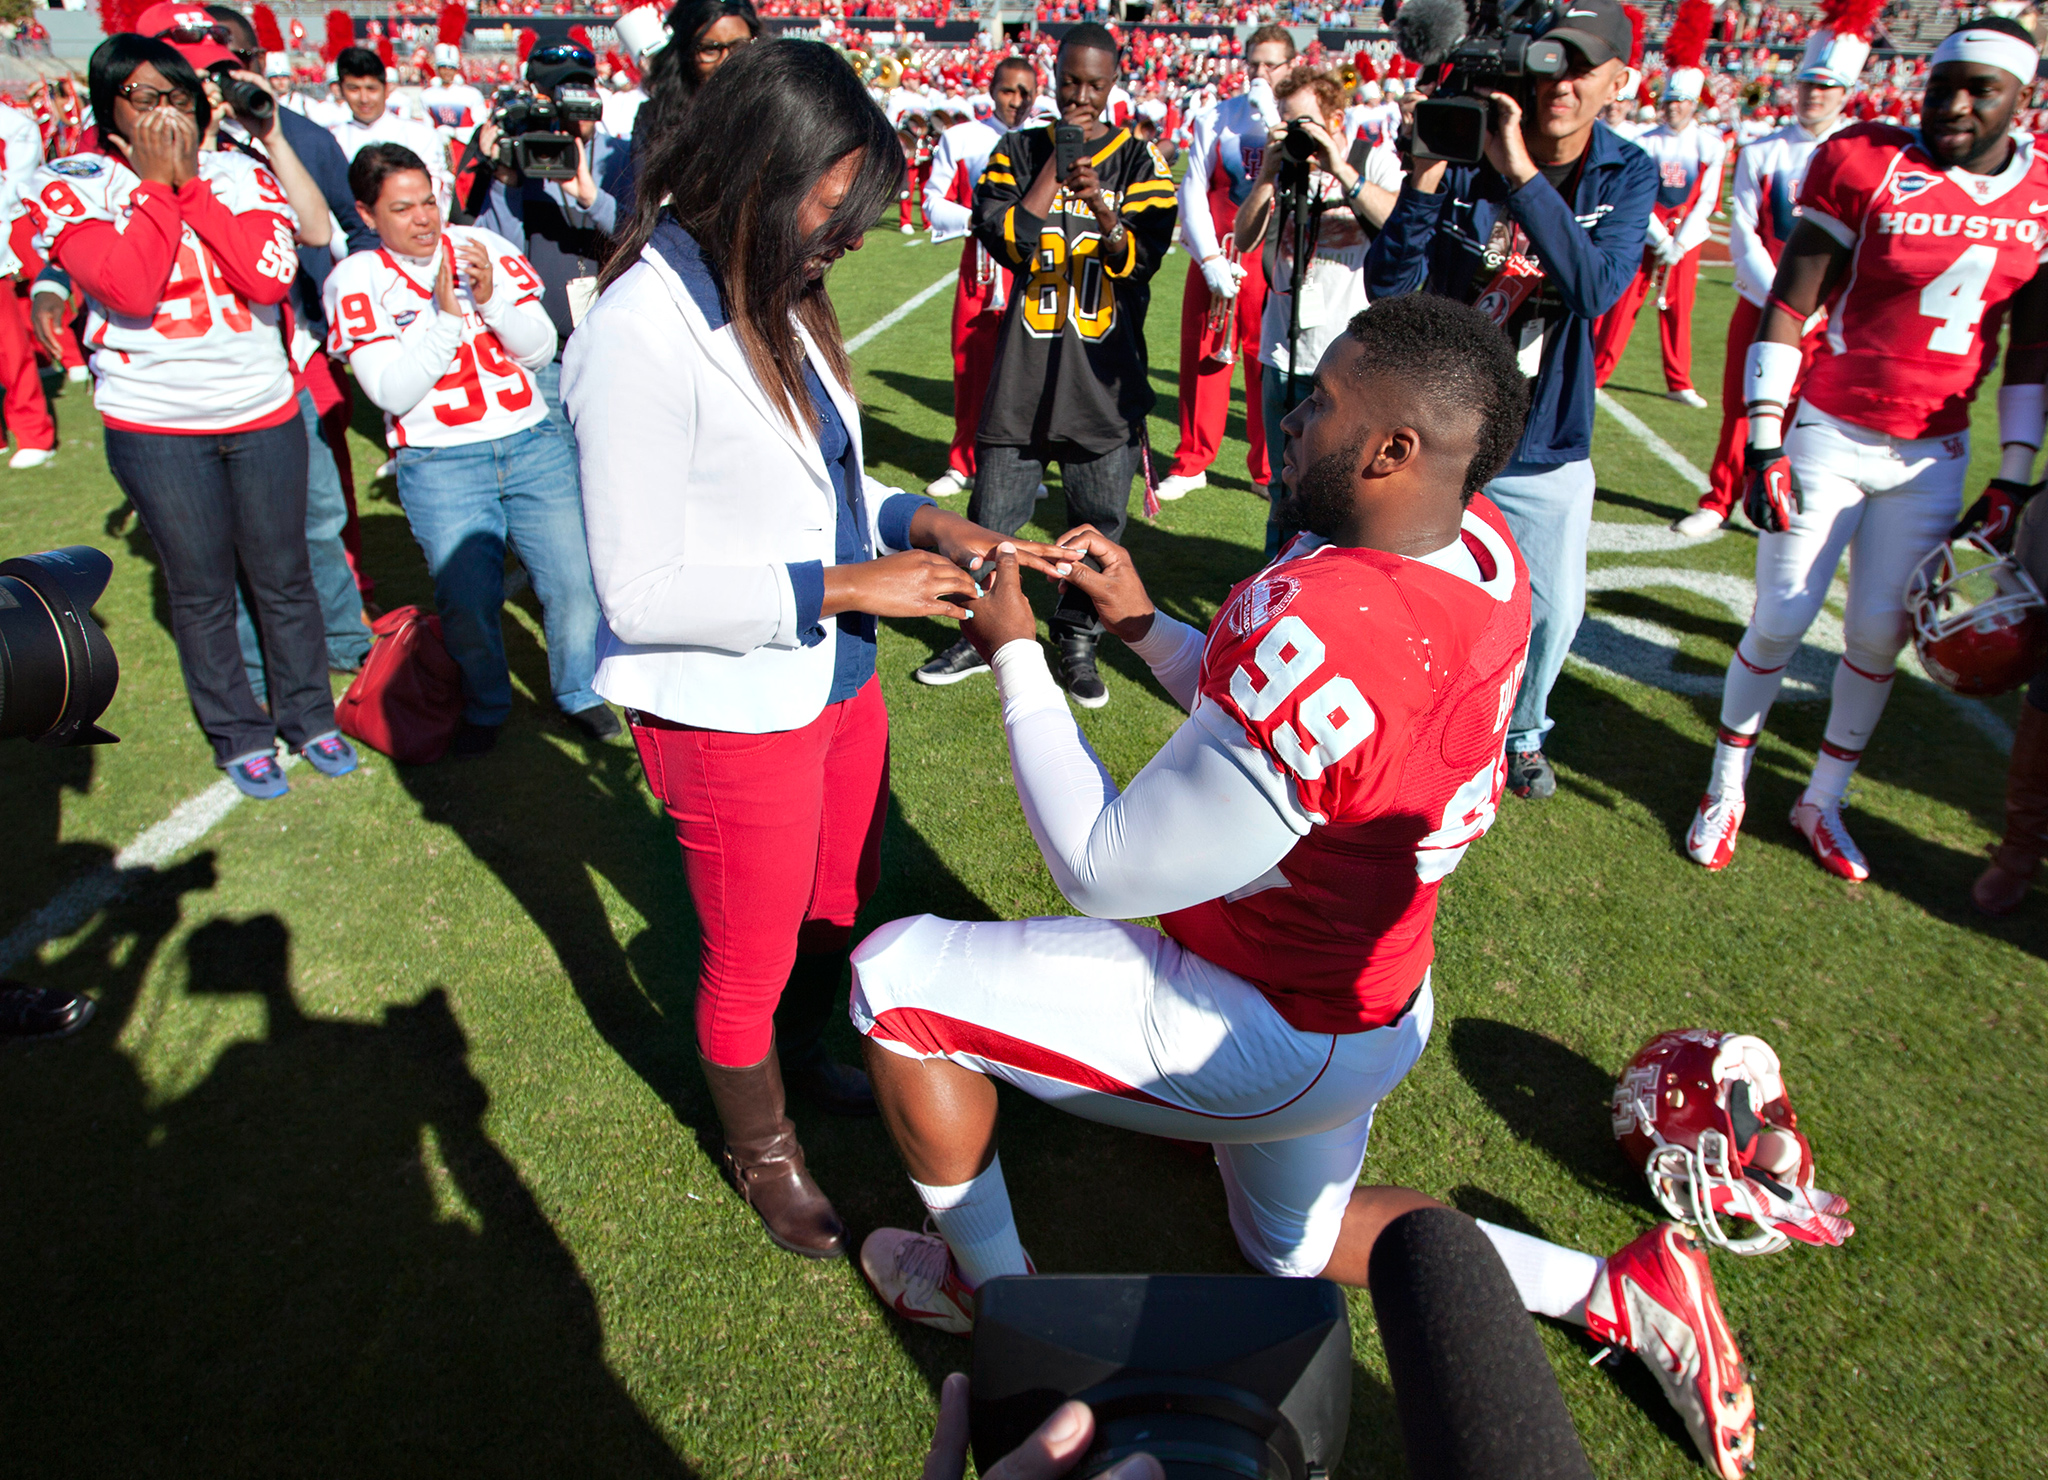 Before taking the field to take on Tulane back in 2012, Houston defensive tackle Dominic Miller thrilled the crowd and proposed to his girlfriend on the 50-yard line.